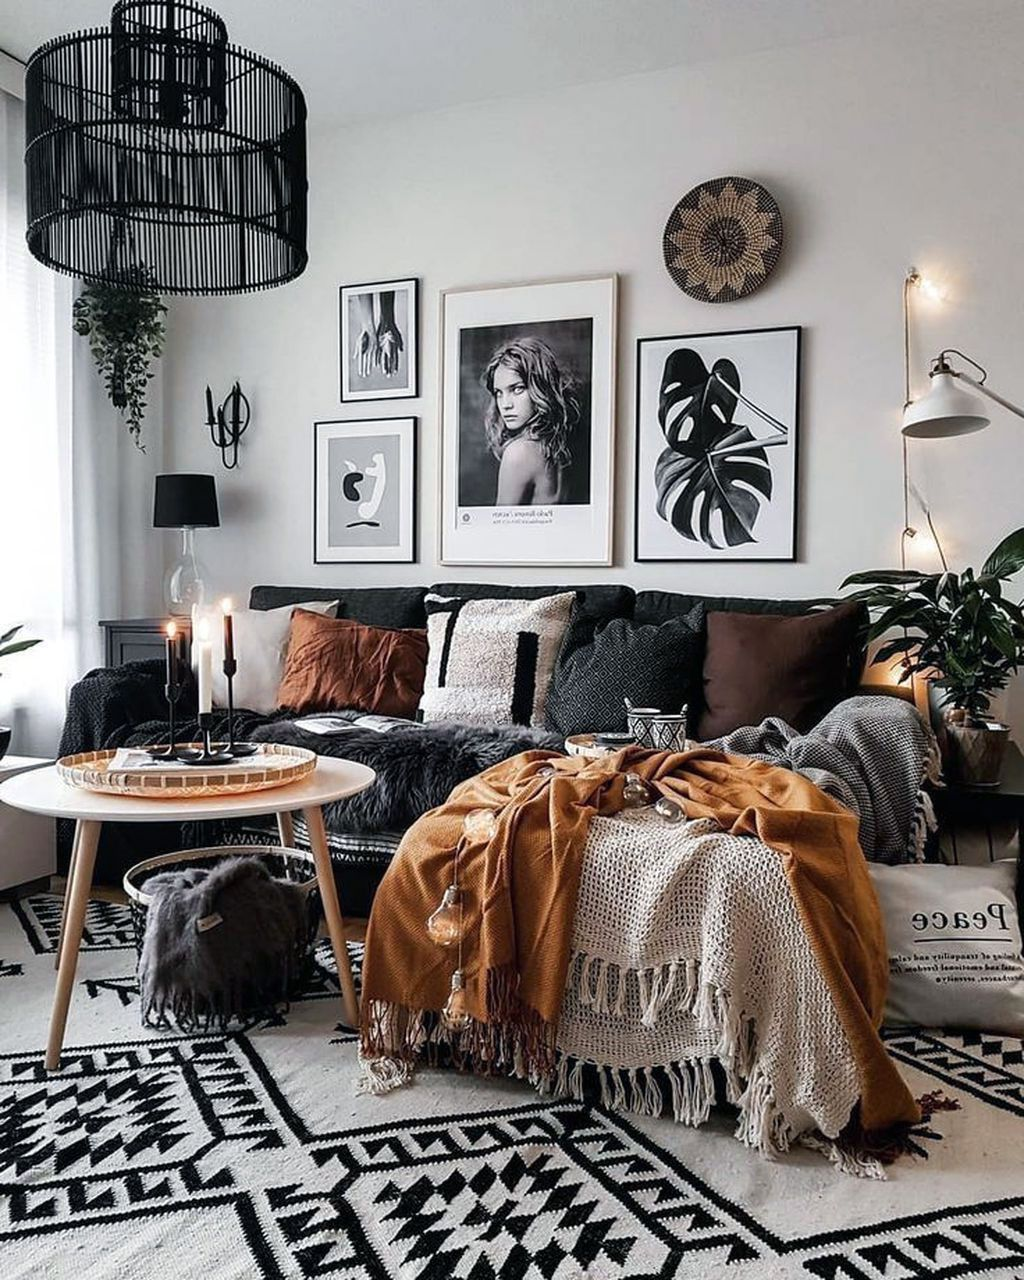 28 Marvelous Scandinavian Living Rooms With Boho Style Ideas